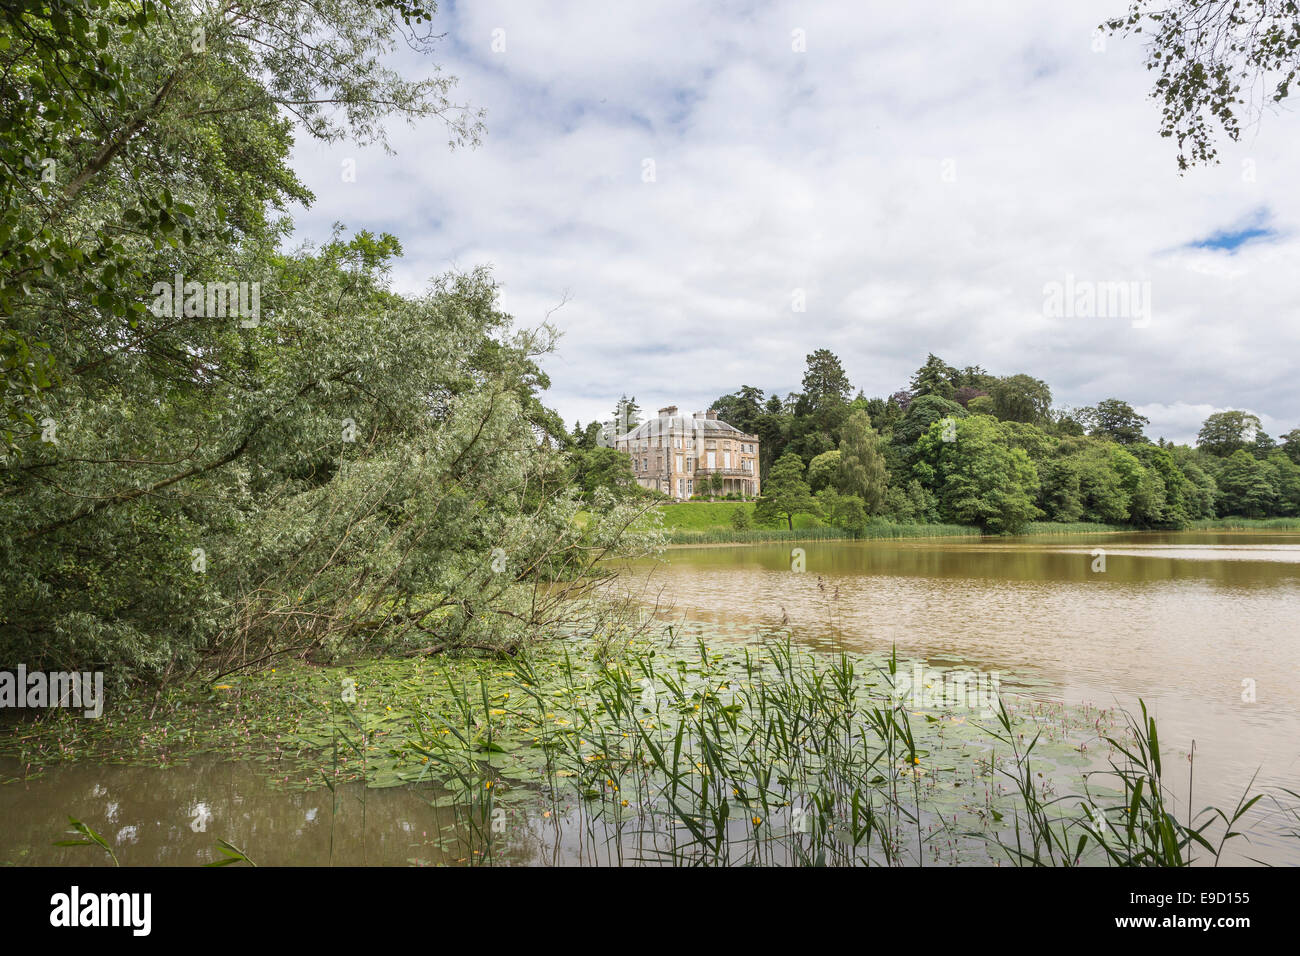 The Haining at Selkirk in the Borders of Scotland. - Stock Image